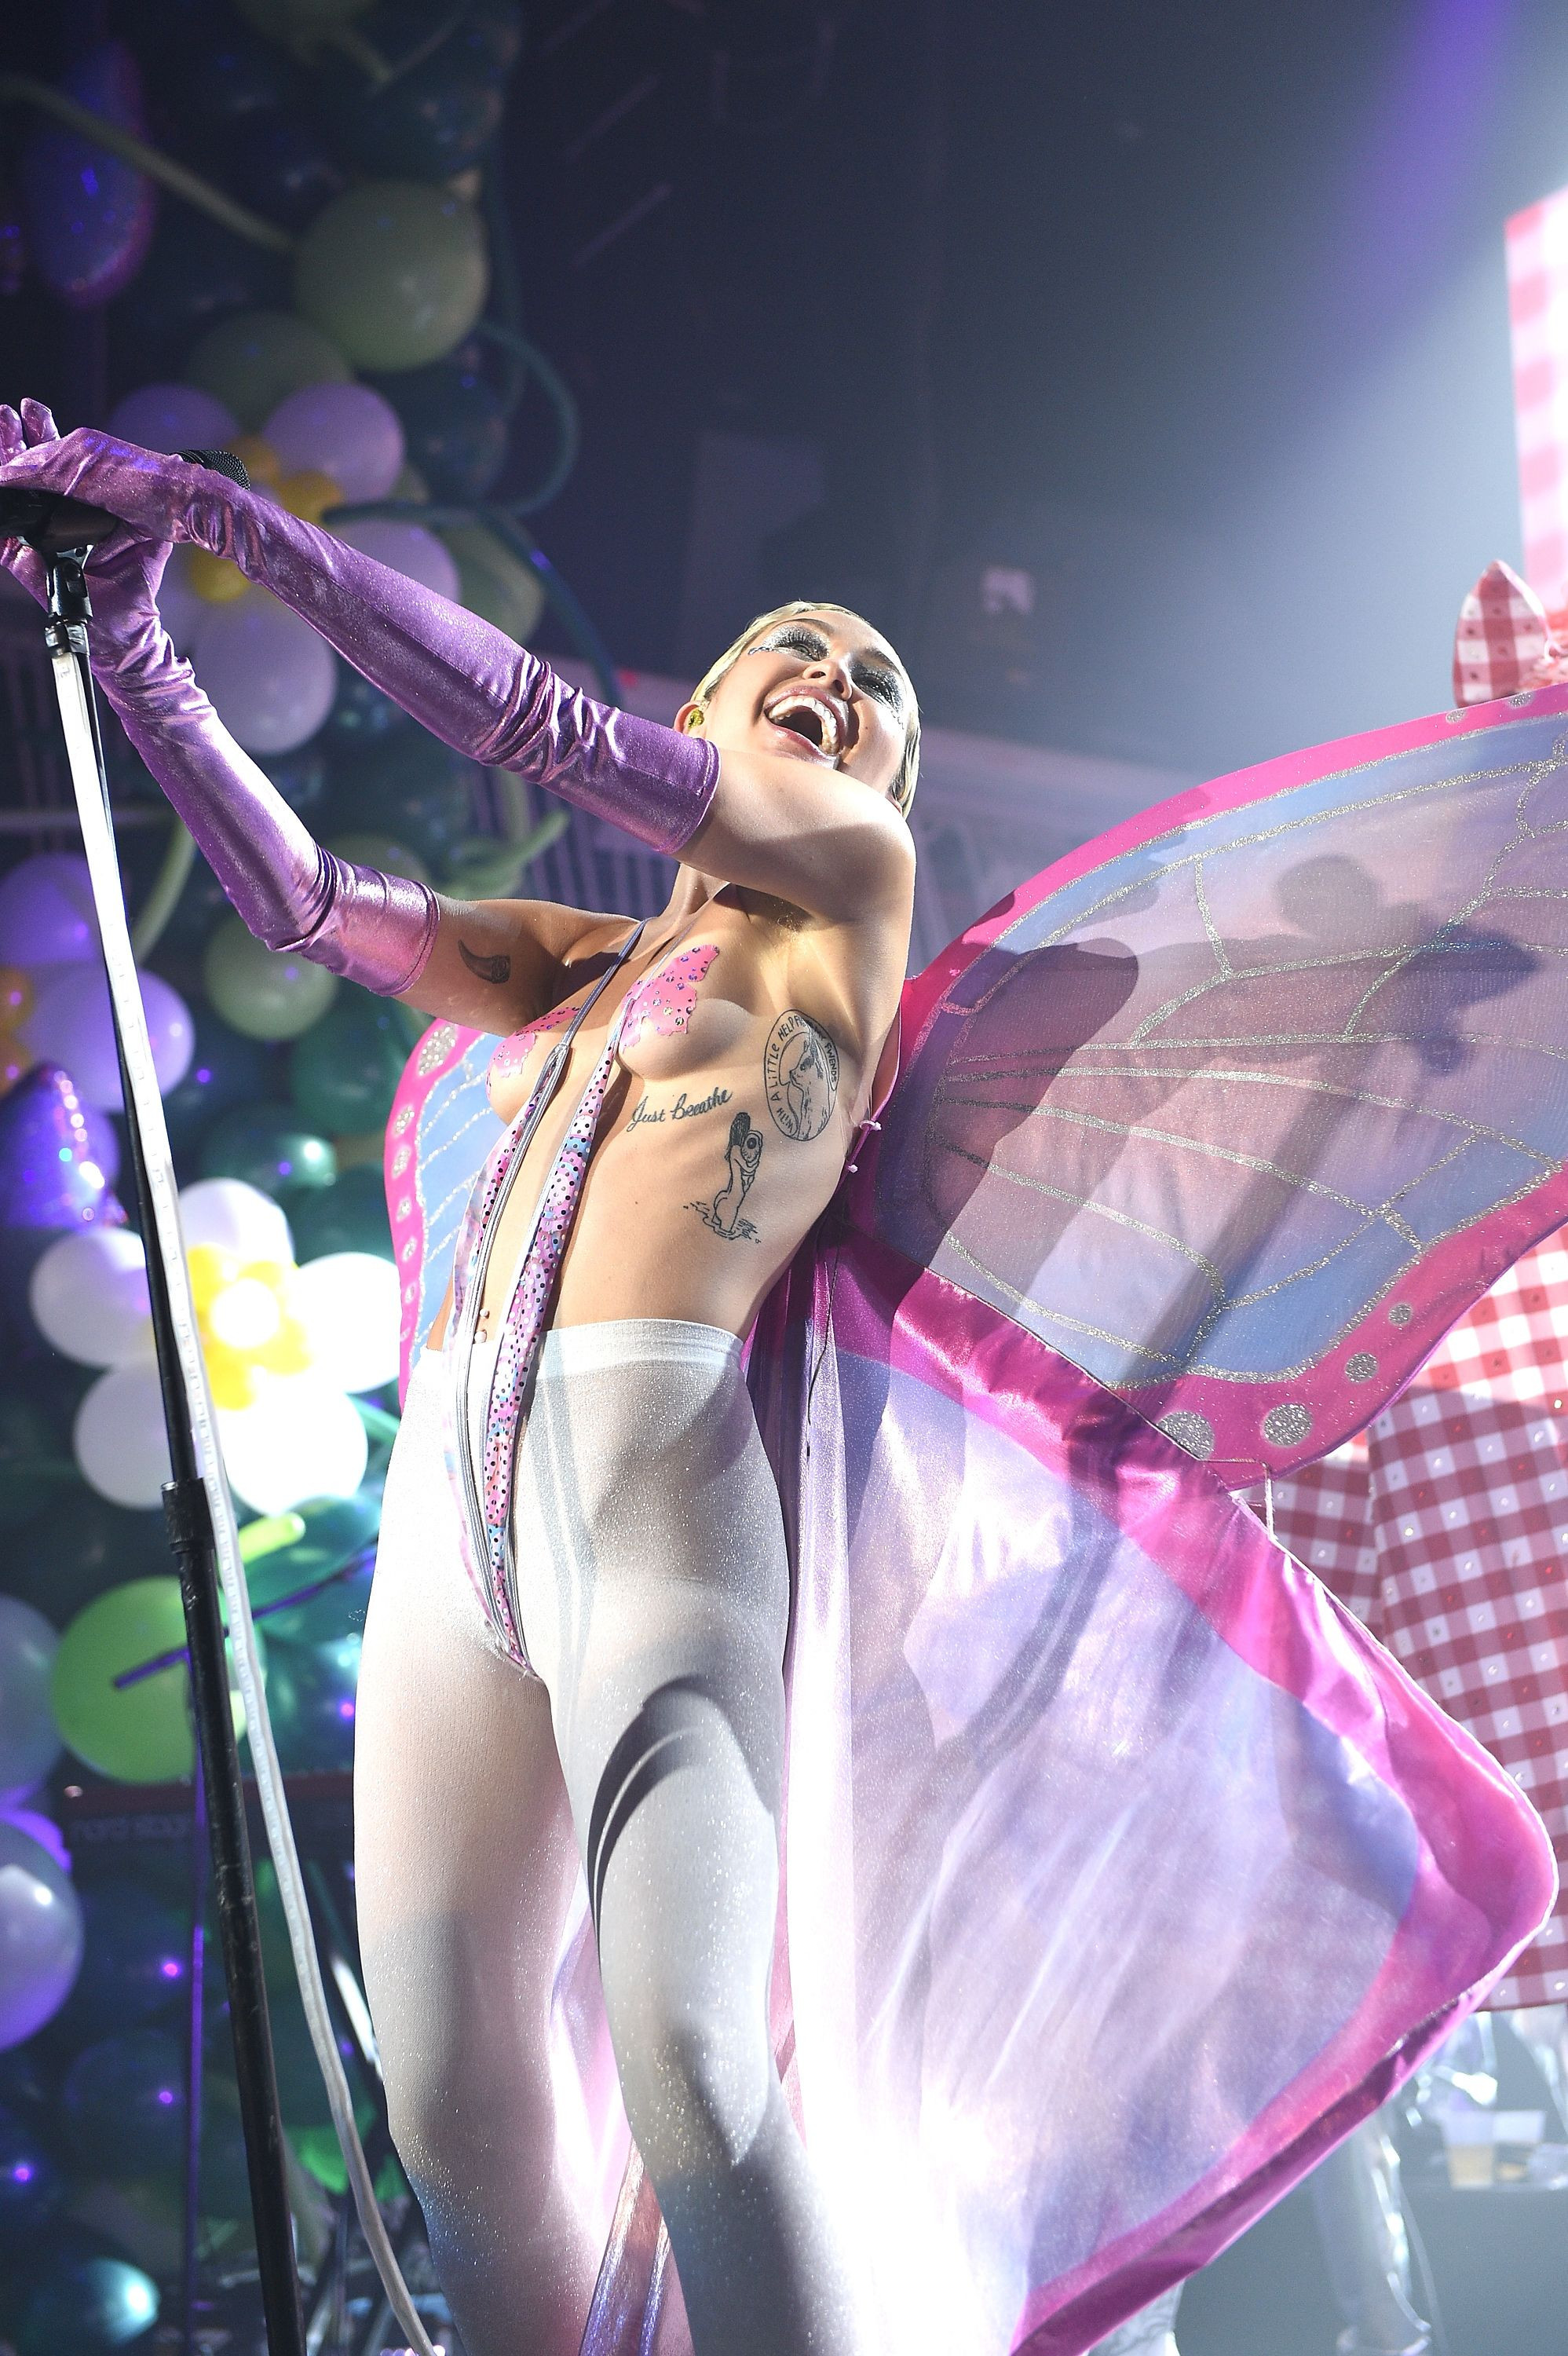 Miley Cyrus Topless 27 TheFappening.nu